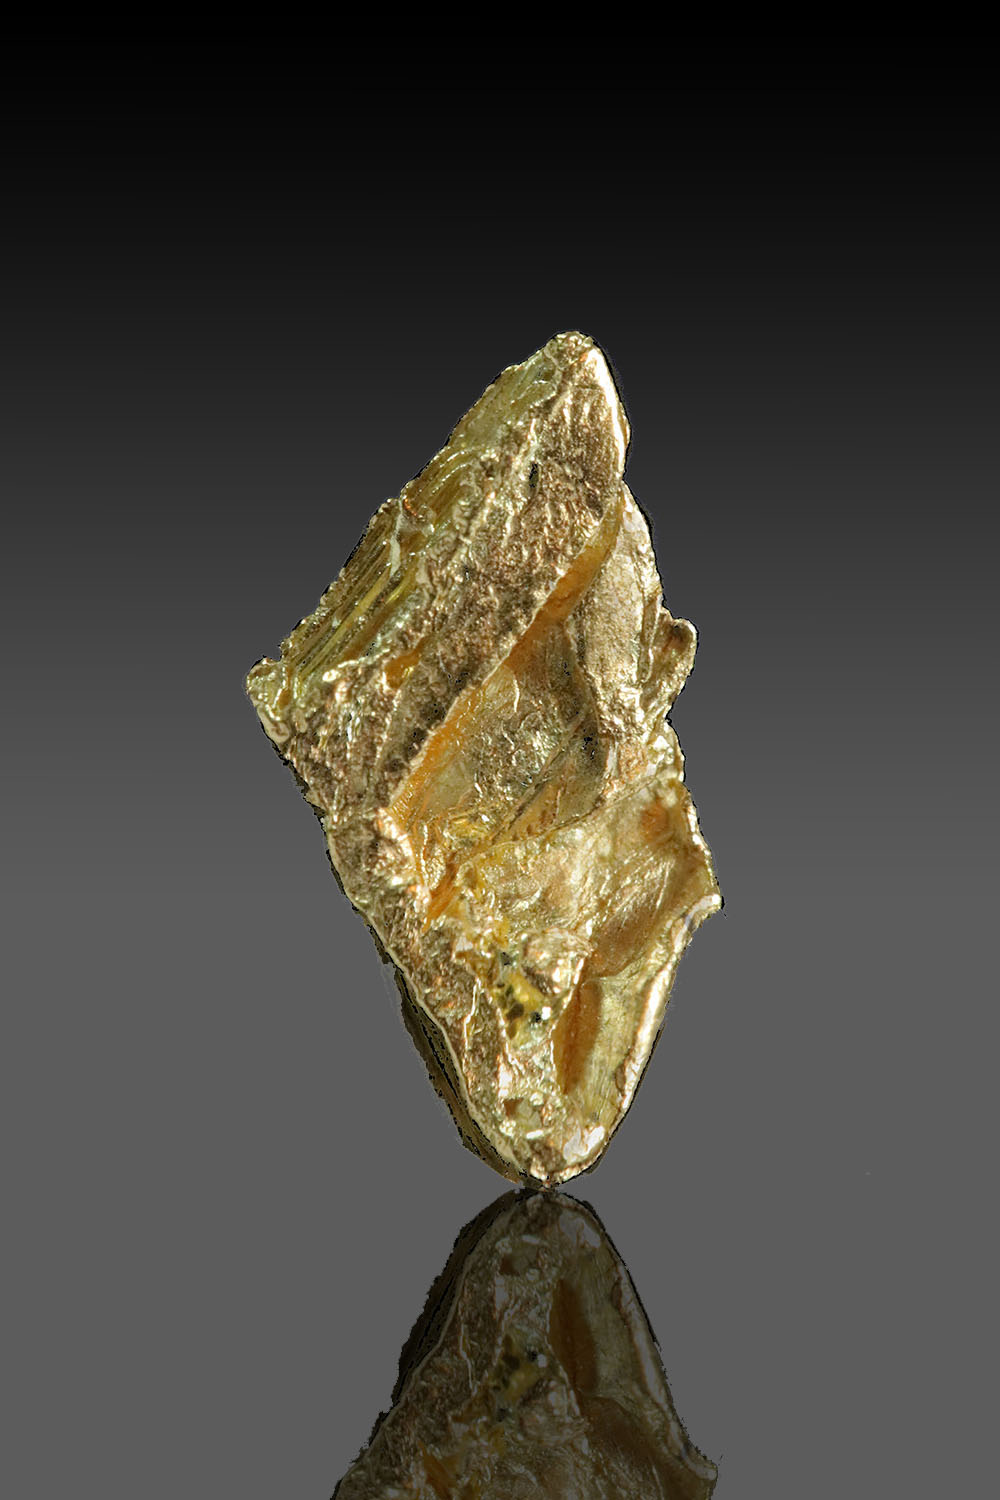 Diamond Shape - Intricate Gold Specimen form the Yukon